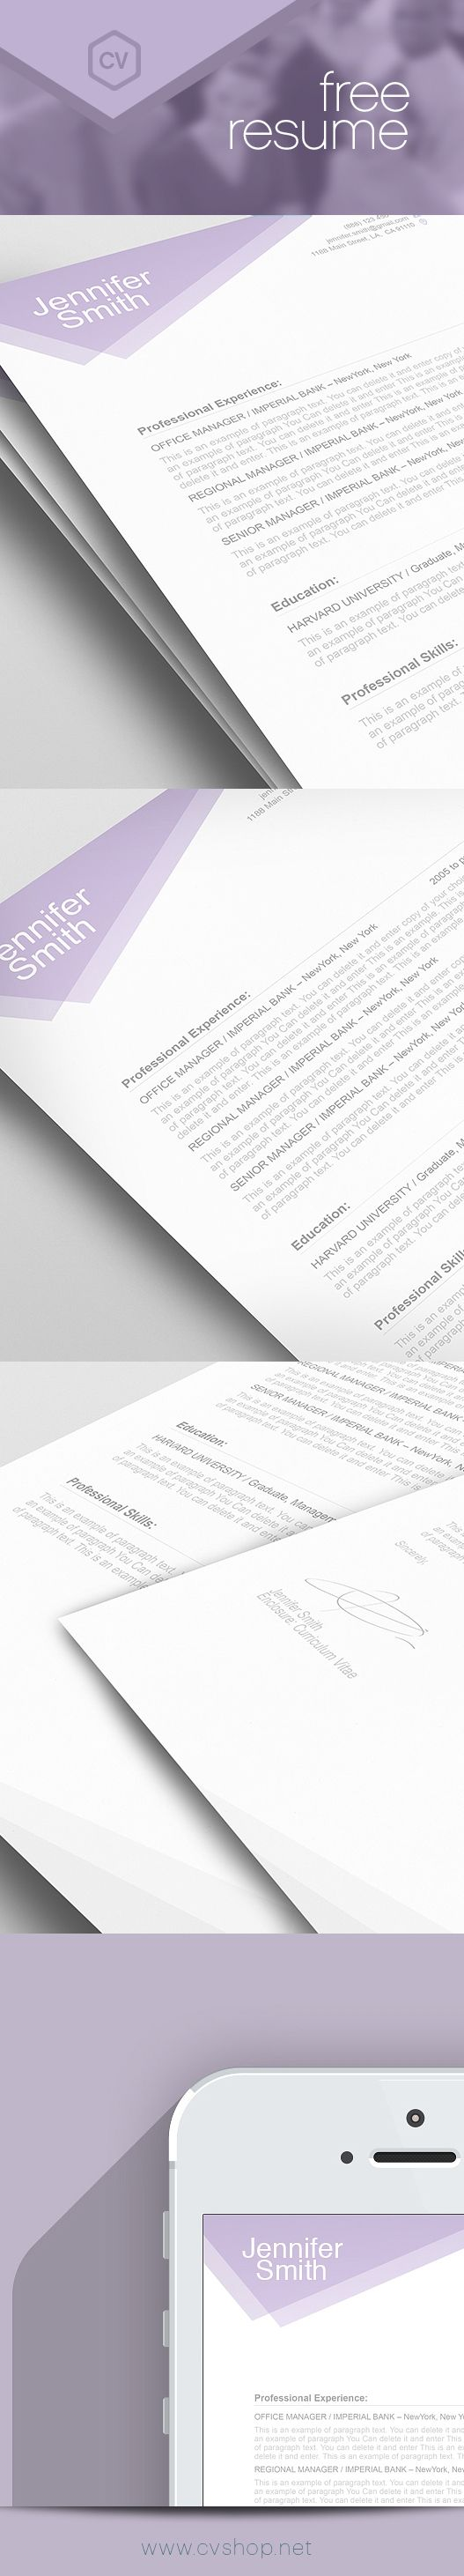 free resume template 100040 is for anyone looking to create a professional resume and cover letter with ease edit in ms word and iwork pages